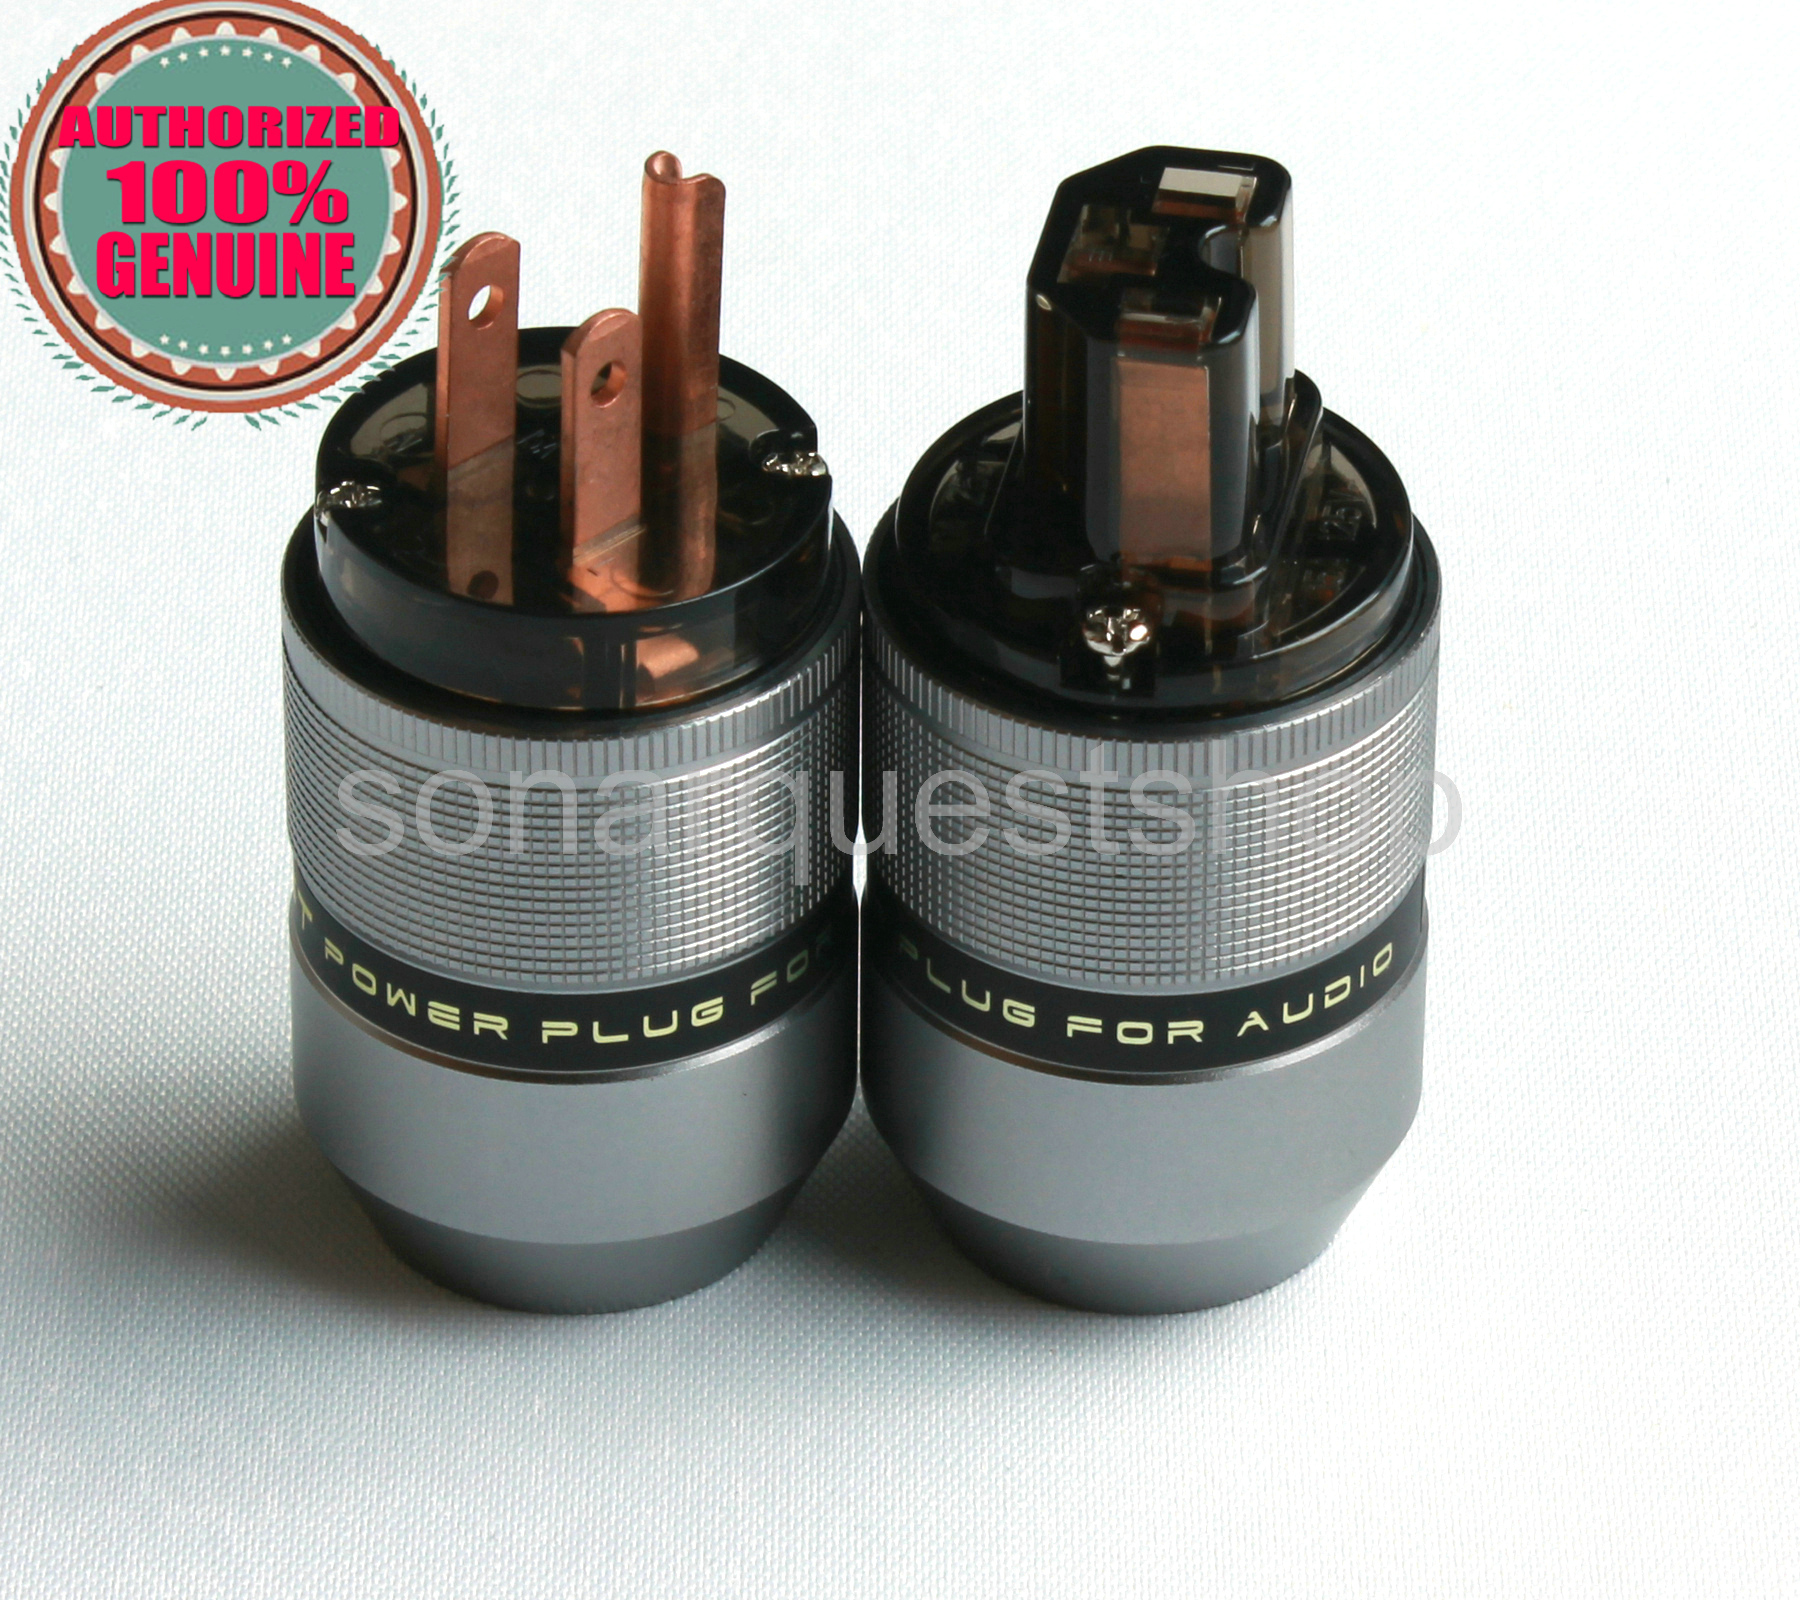 SONARQUEST PA-40M(C)+PA-40F(C)US Red Copper Gray Special Aluminum alloy Power Plug & IEC